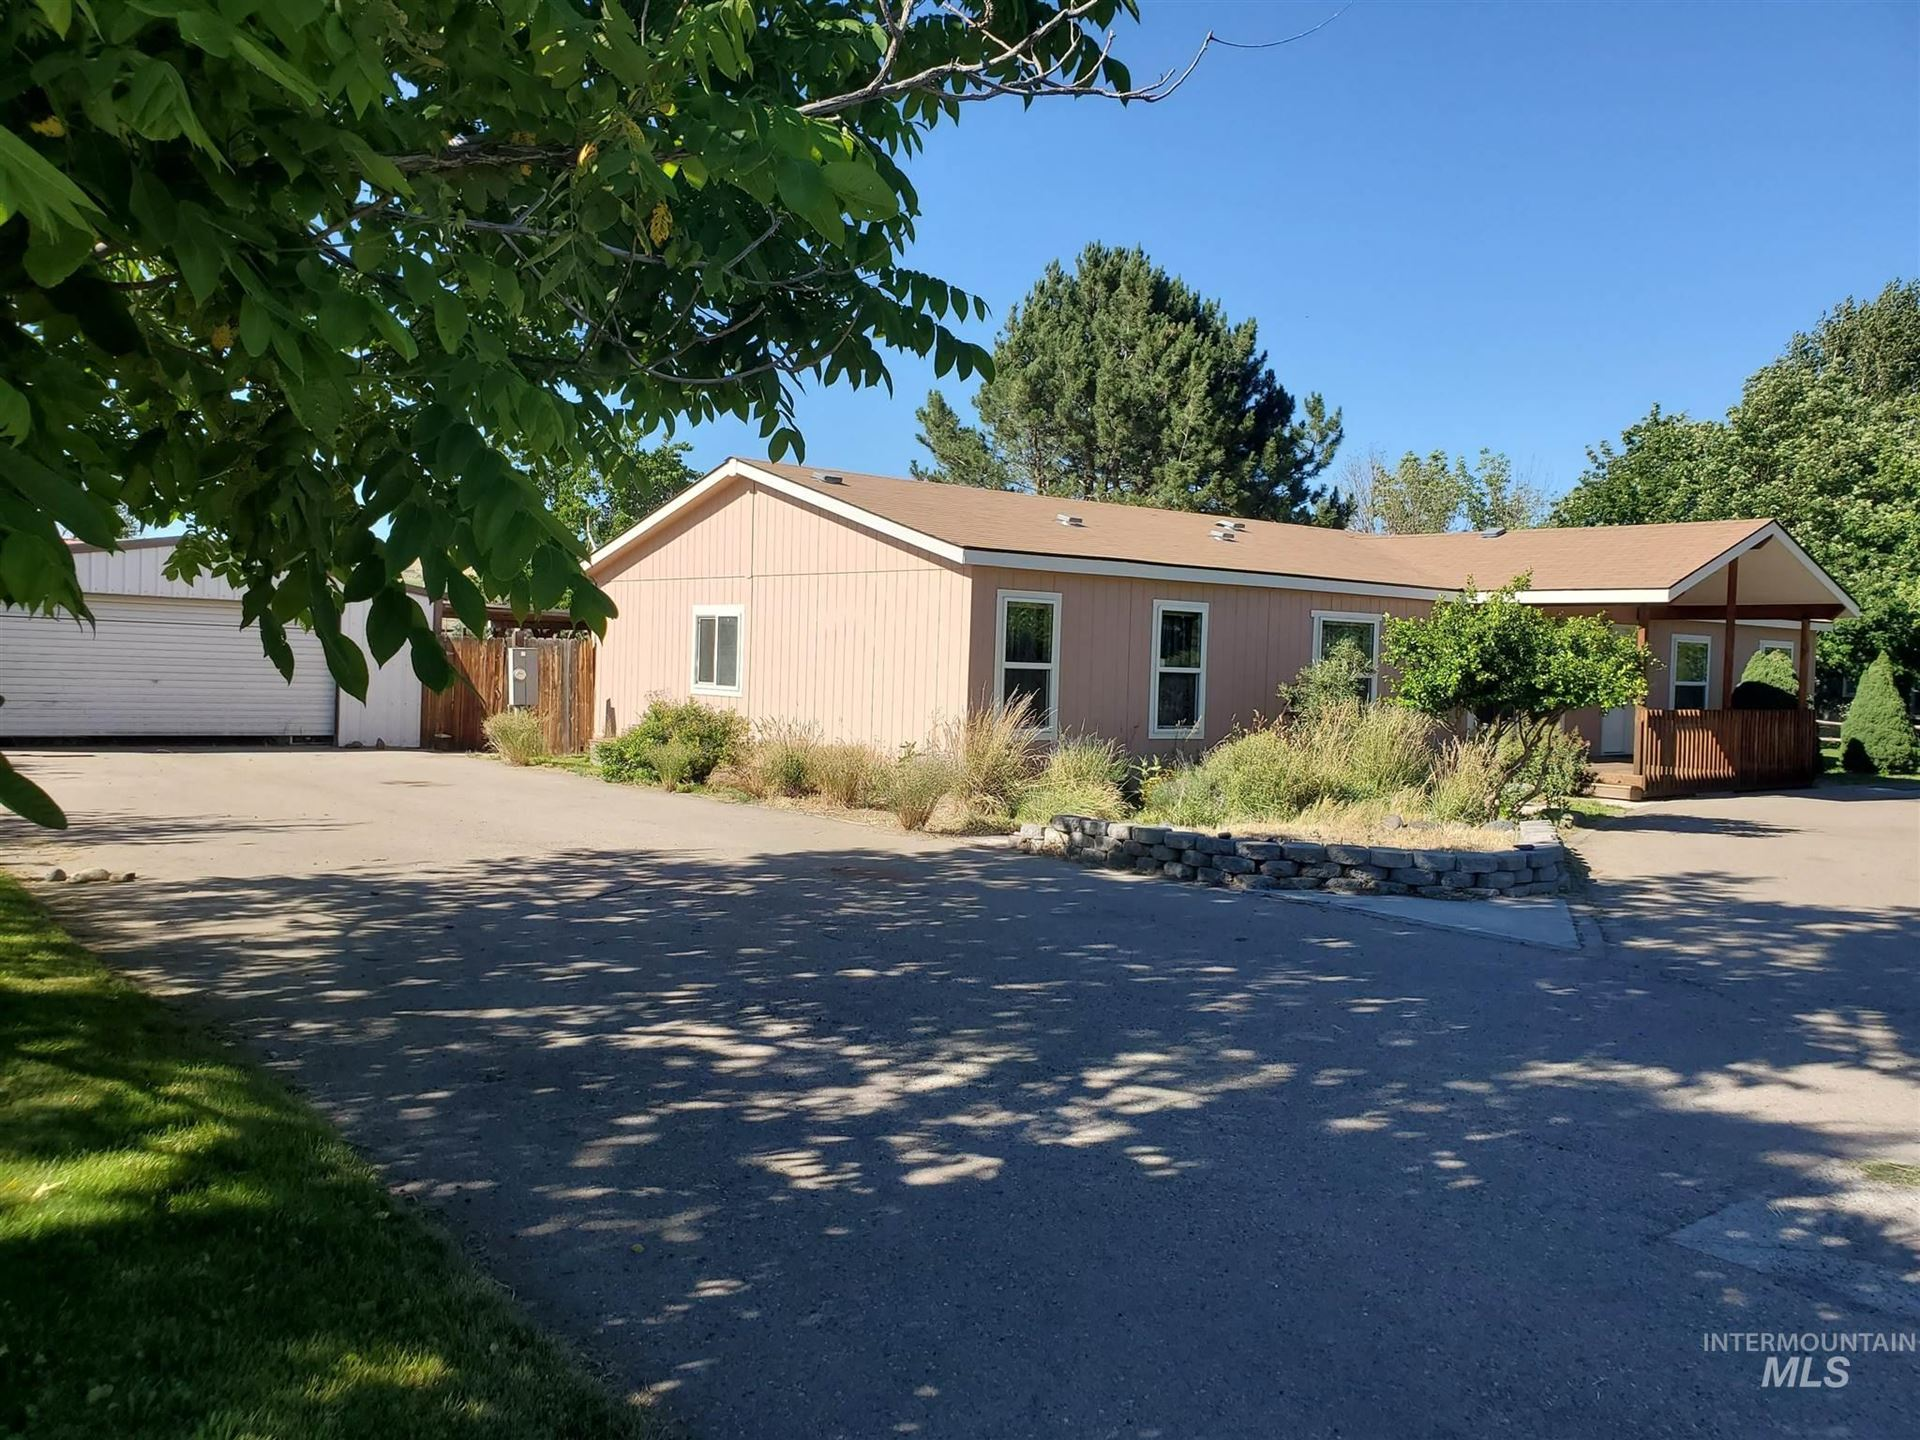 1008 E Cleveland Ave, Glenns Ferry, ID 83623 - MLS#: 98771345